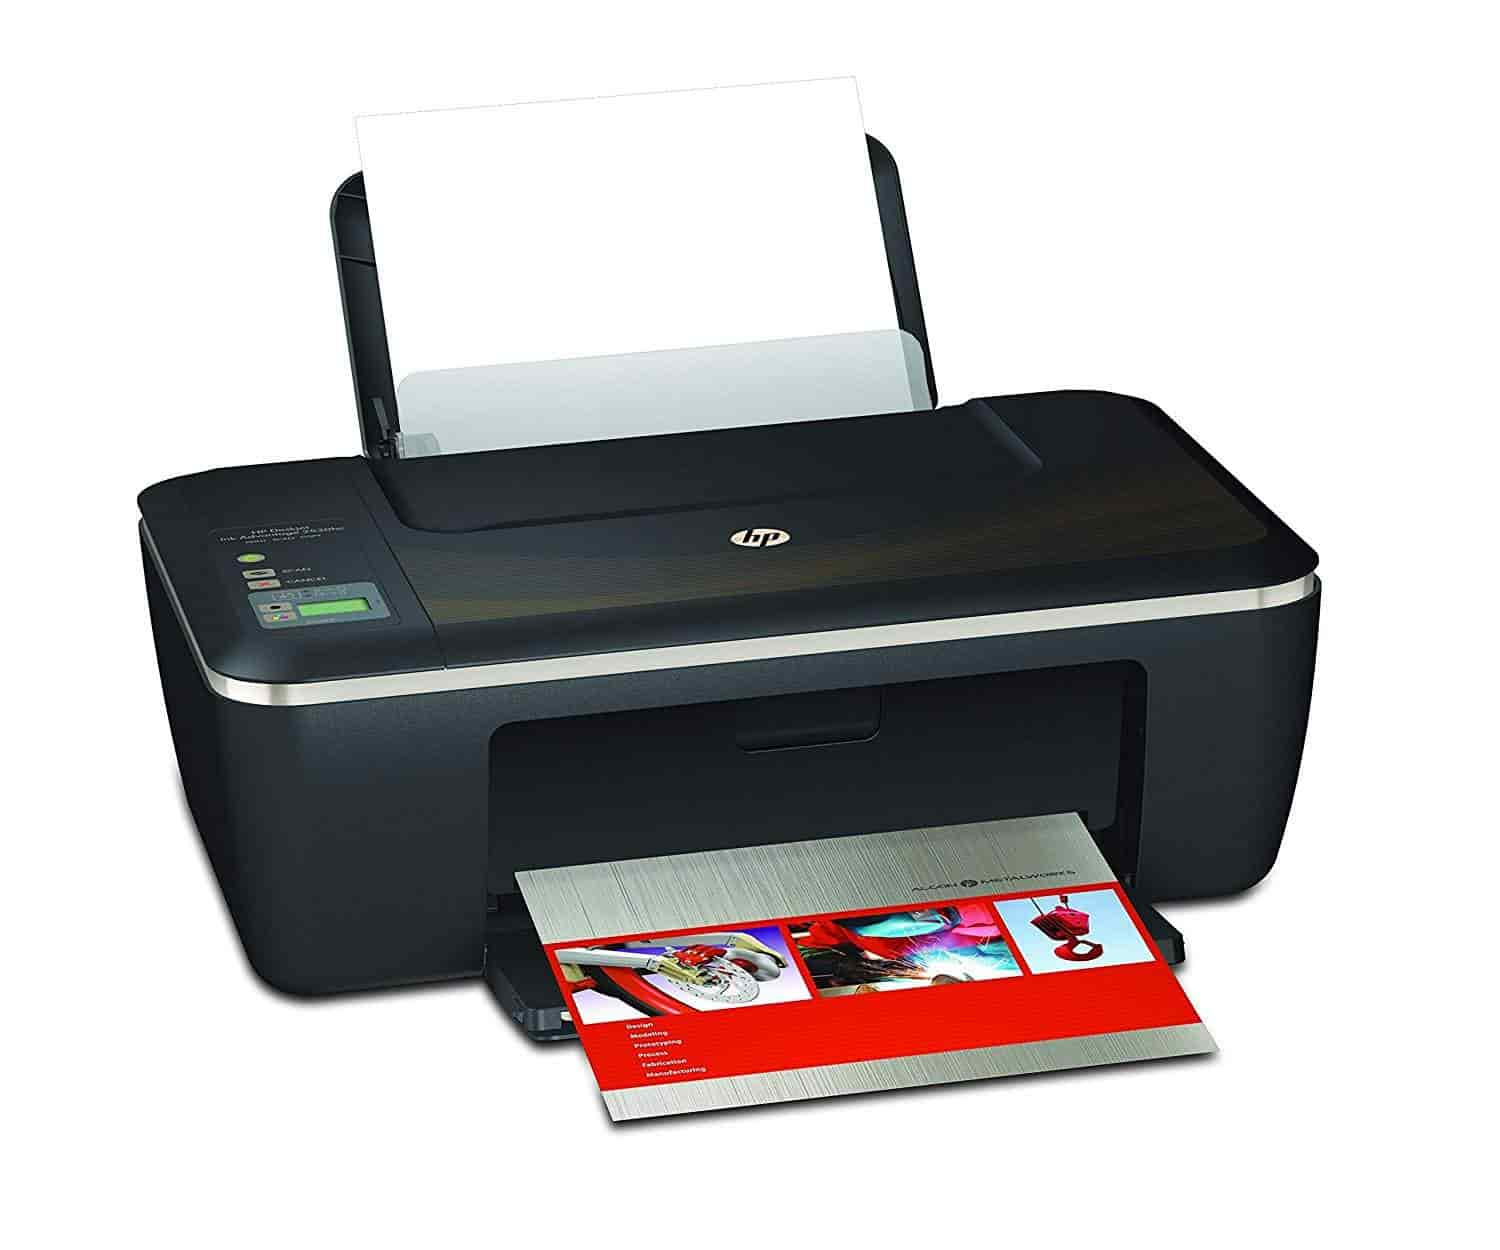 HP Deskjet 3845 Printer Setup